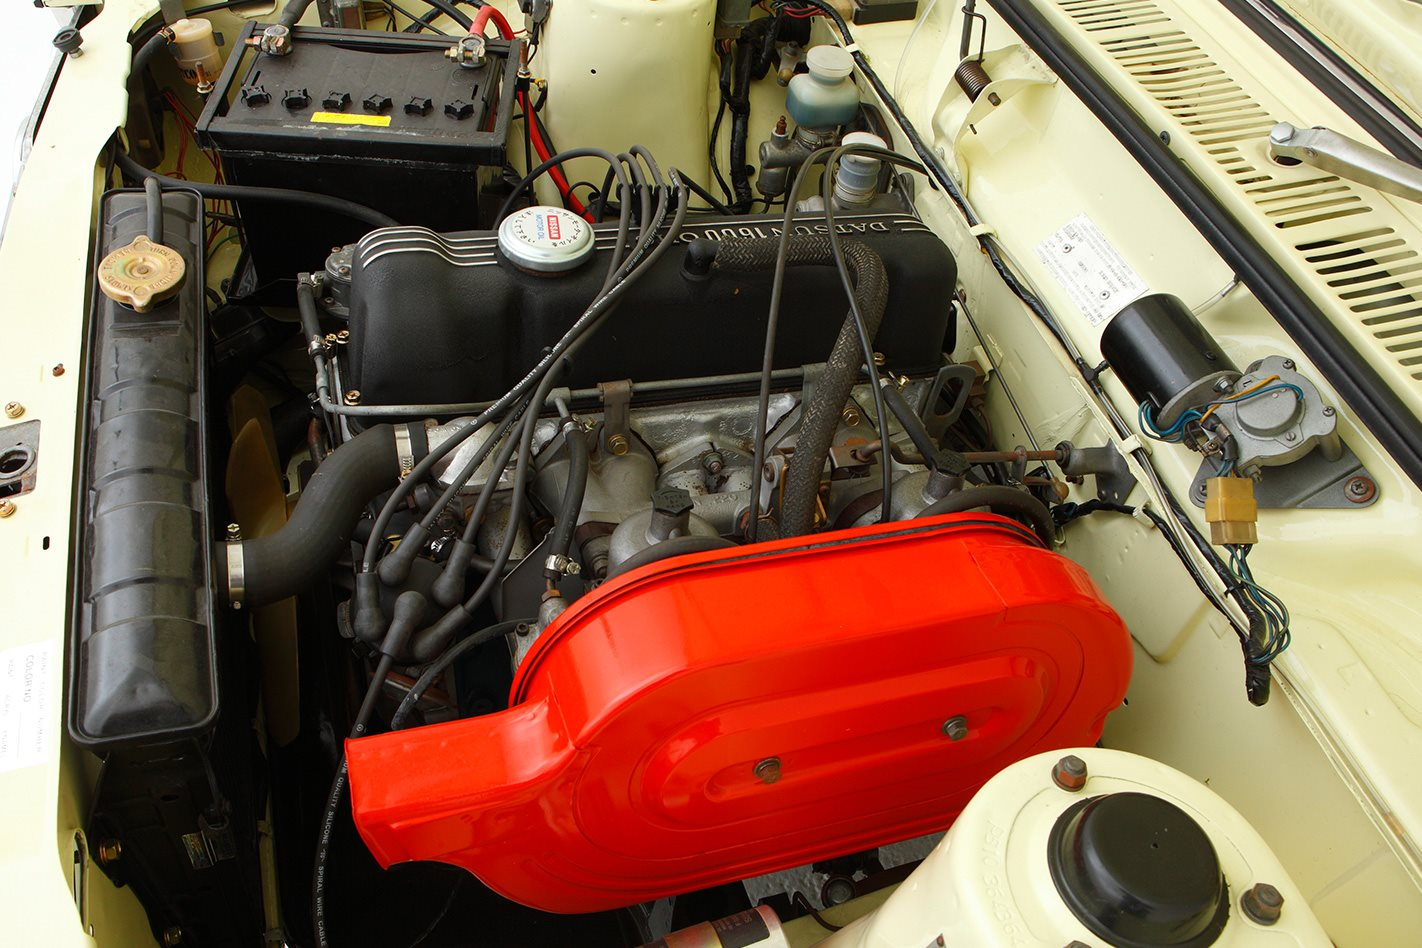 Datsun 1600 legend series engine